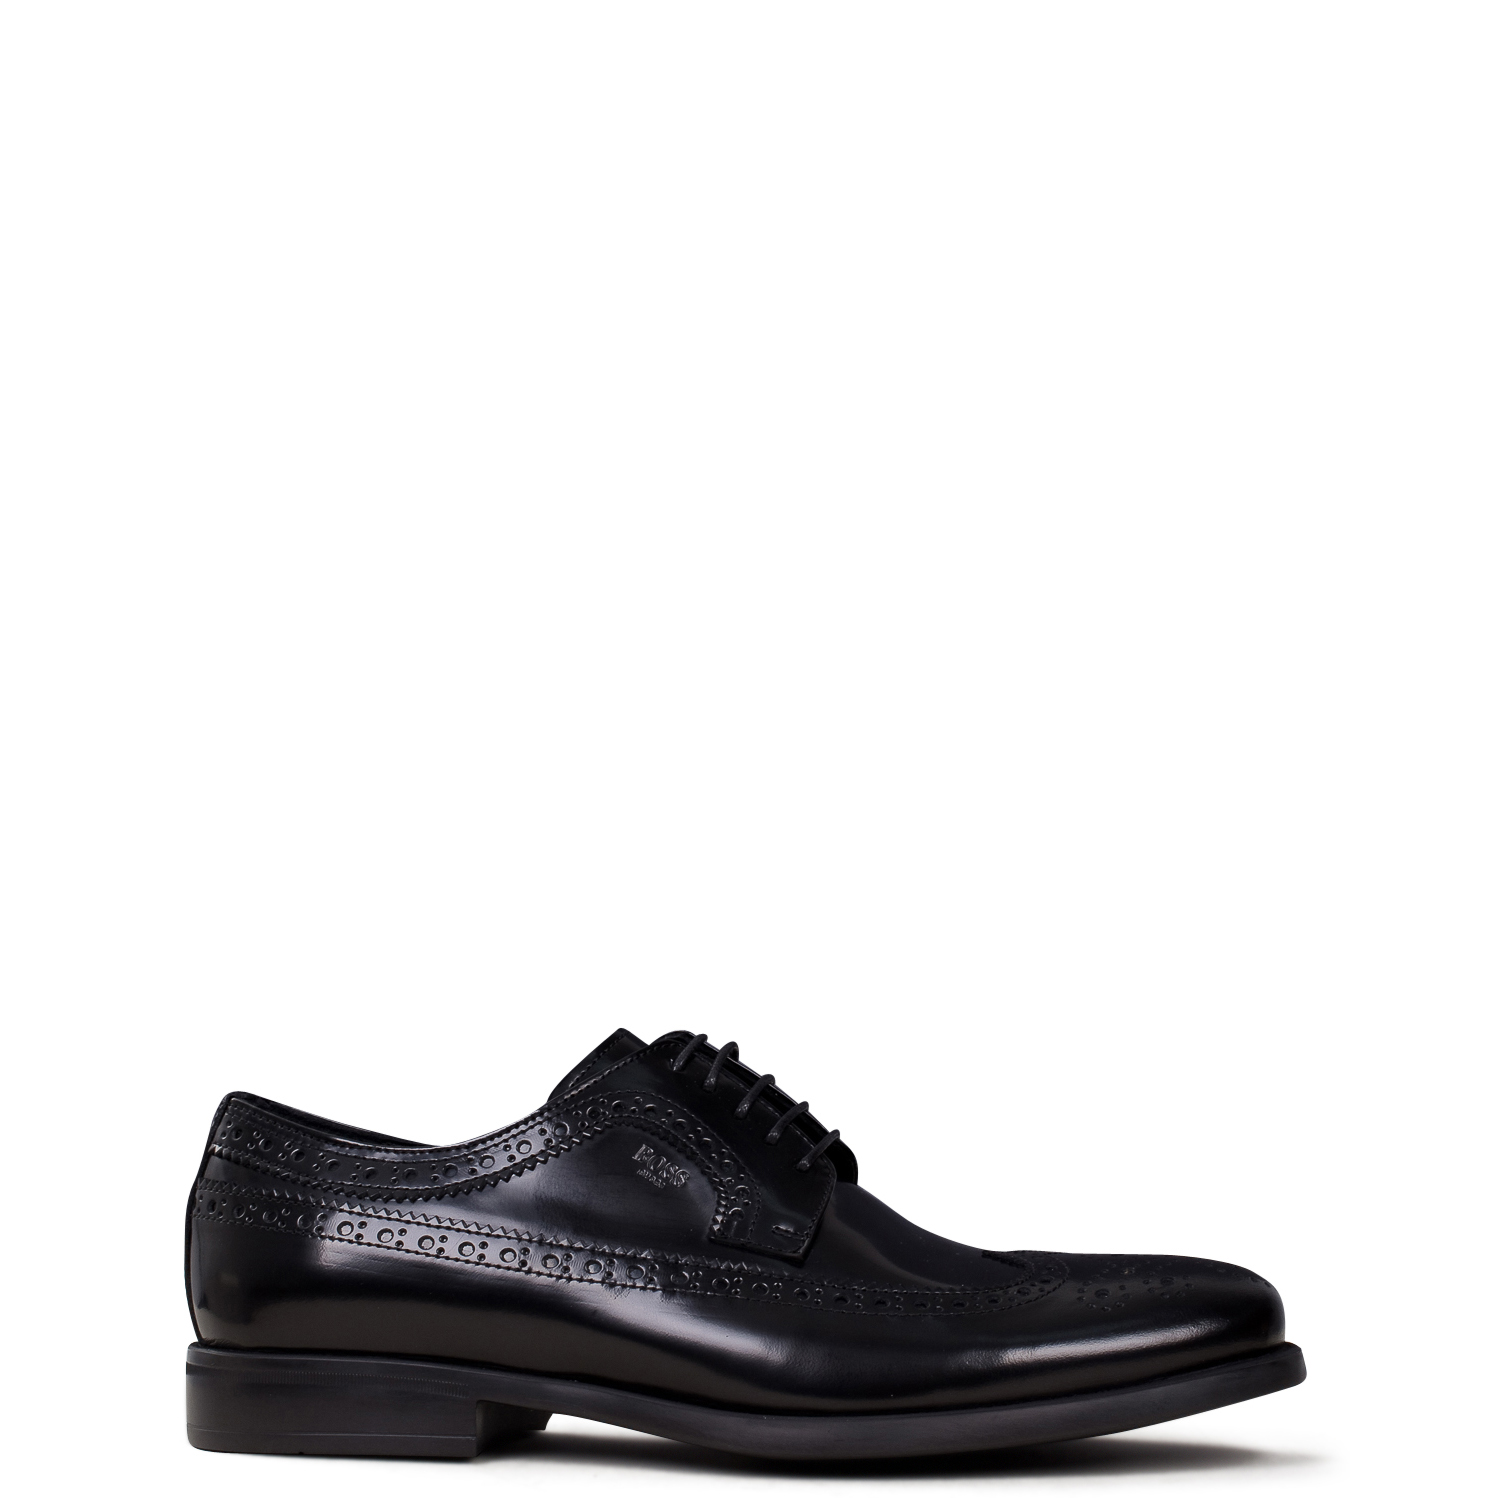 Oxfords - Brogues ανδρικά Boss Shoes Μαύρο M6215FLO